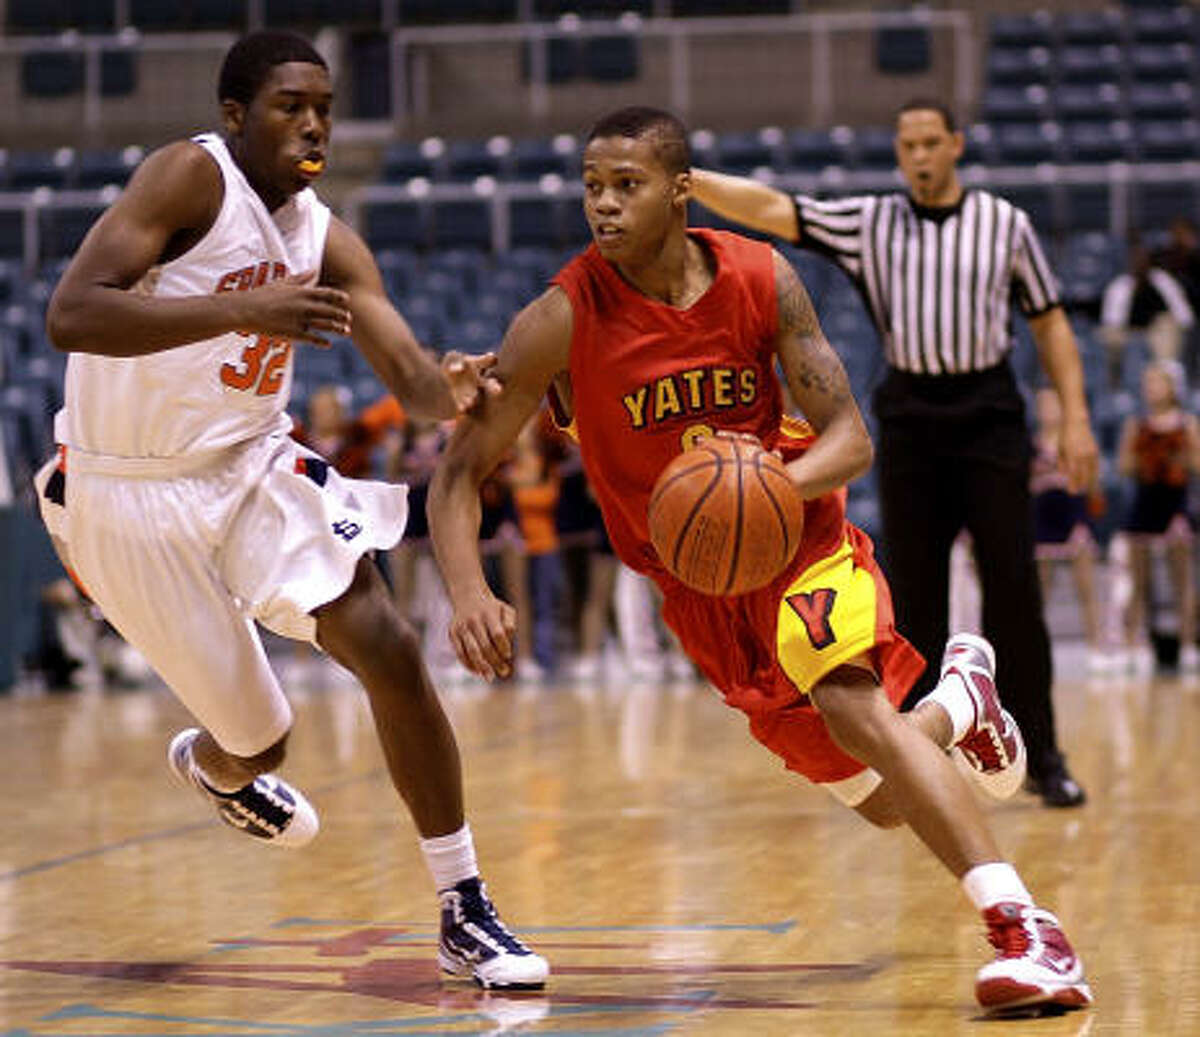 Yates, shown playing against Seven Lakes, set a state scoring record against fellow HISD school Lee.